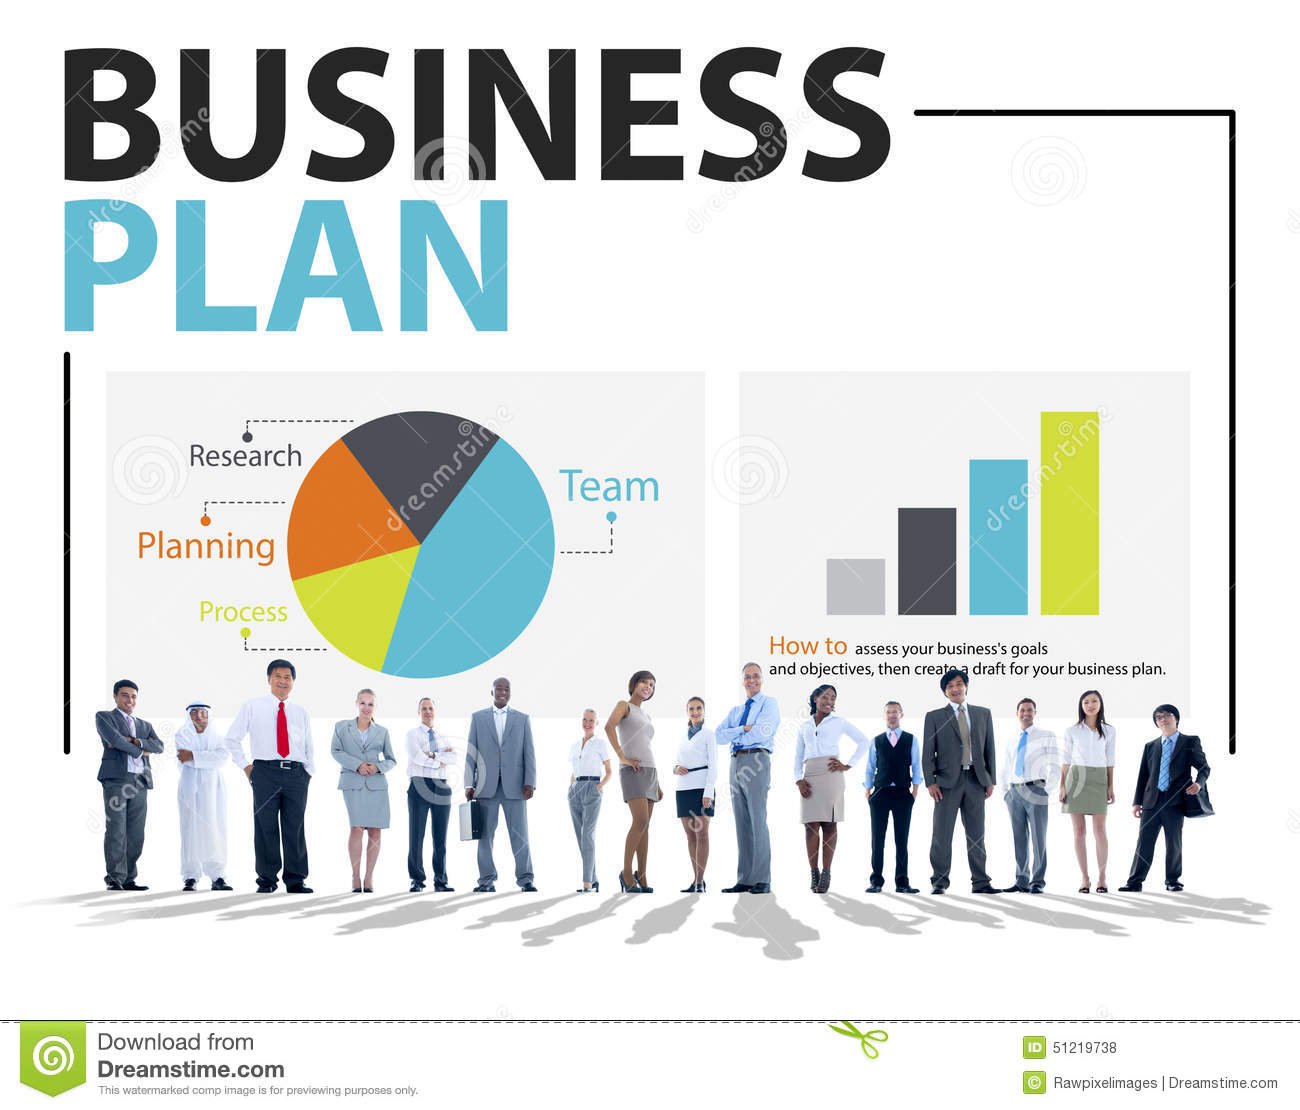 Starting an Event Planning Company – Sample Business Plan Template